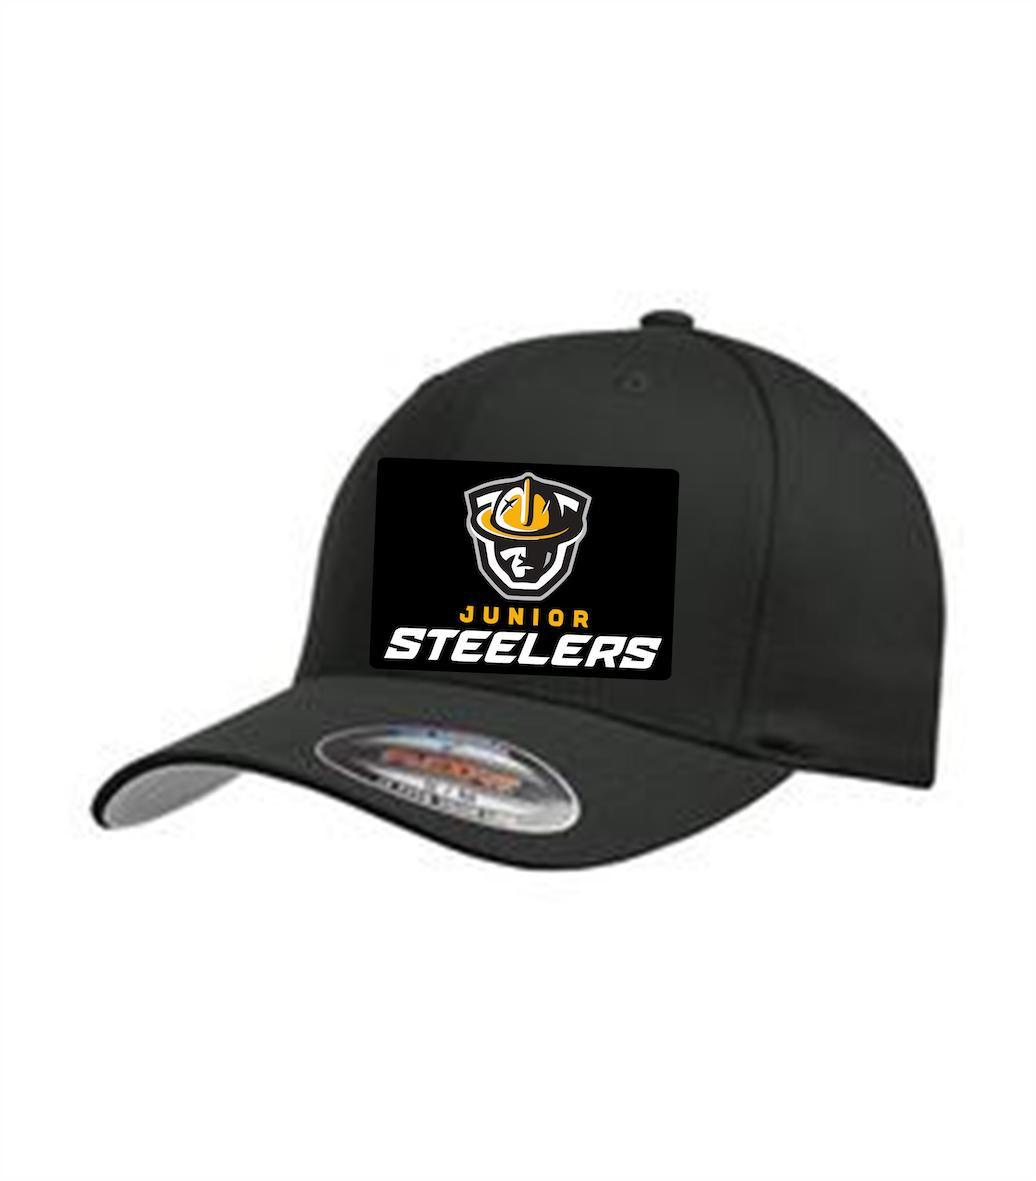 ebf3c7218 Junior Steelers Flex Fit Hat - Scoff s Hockey Shop